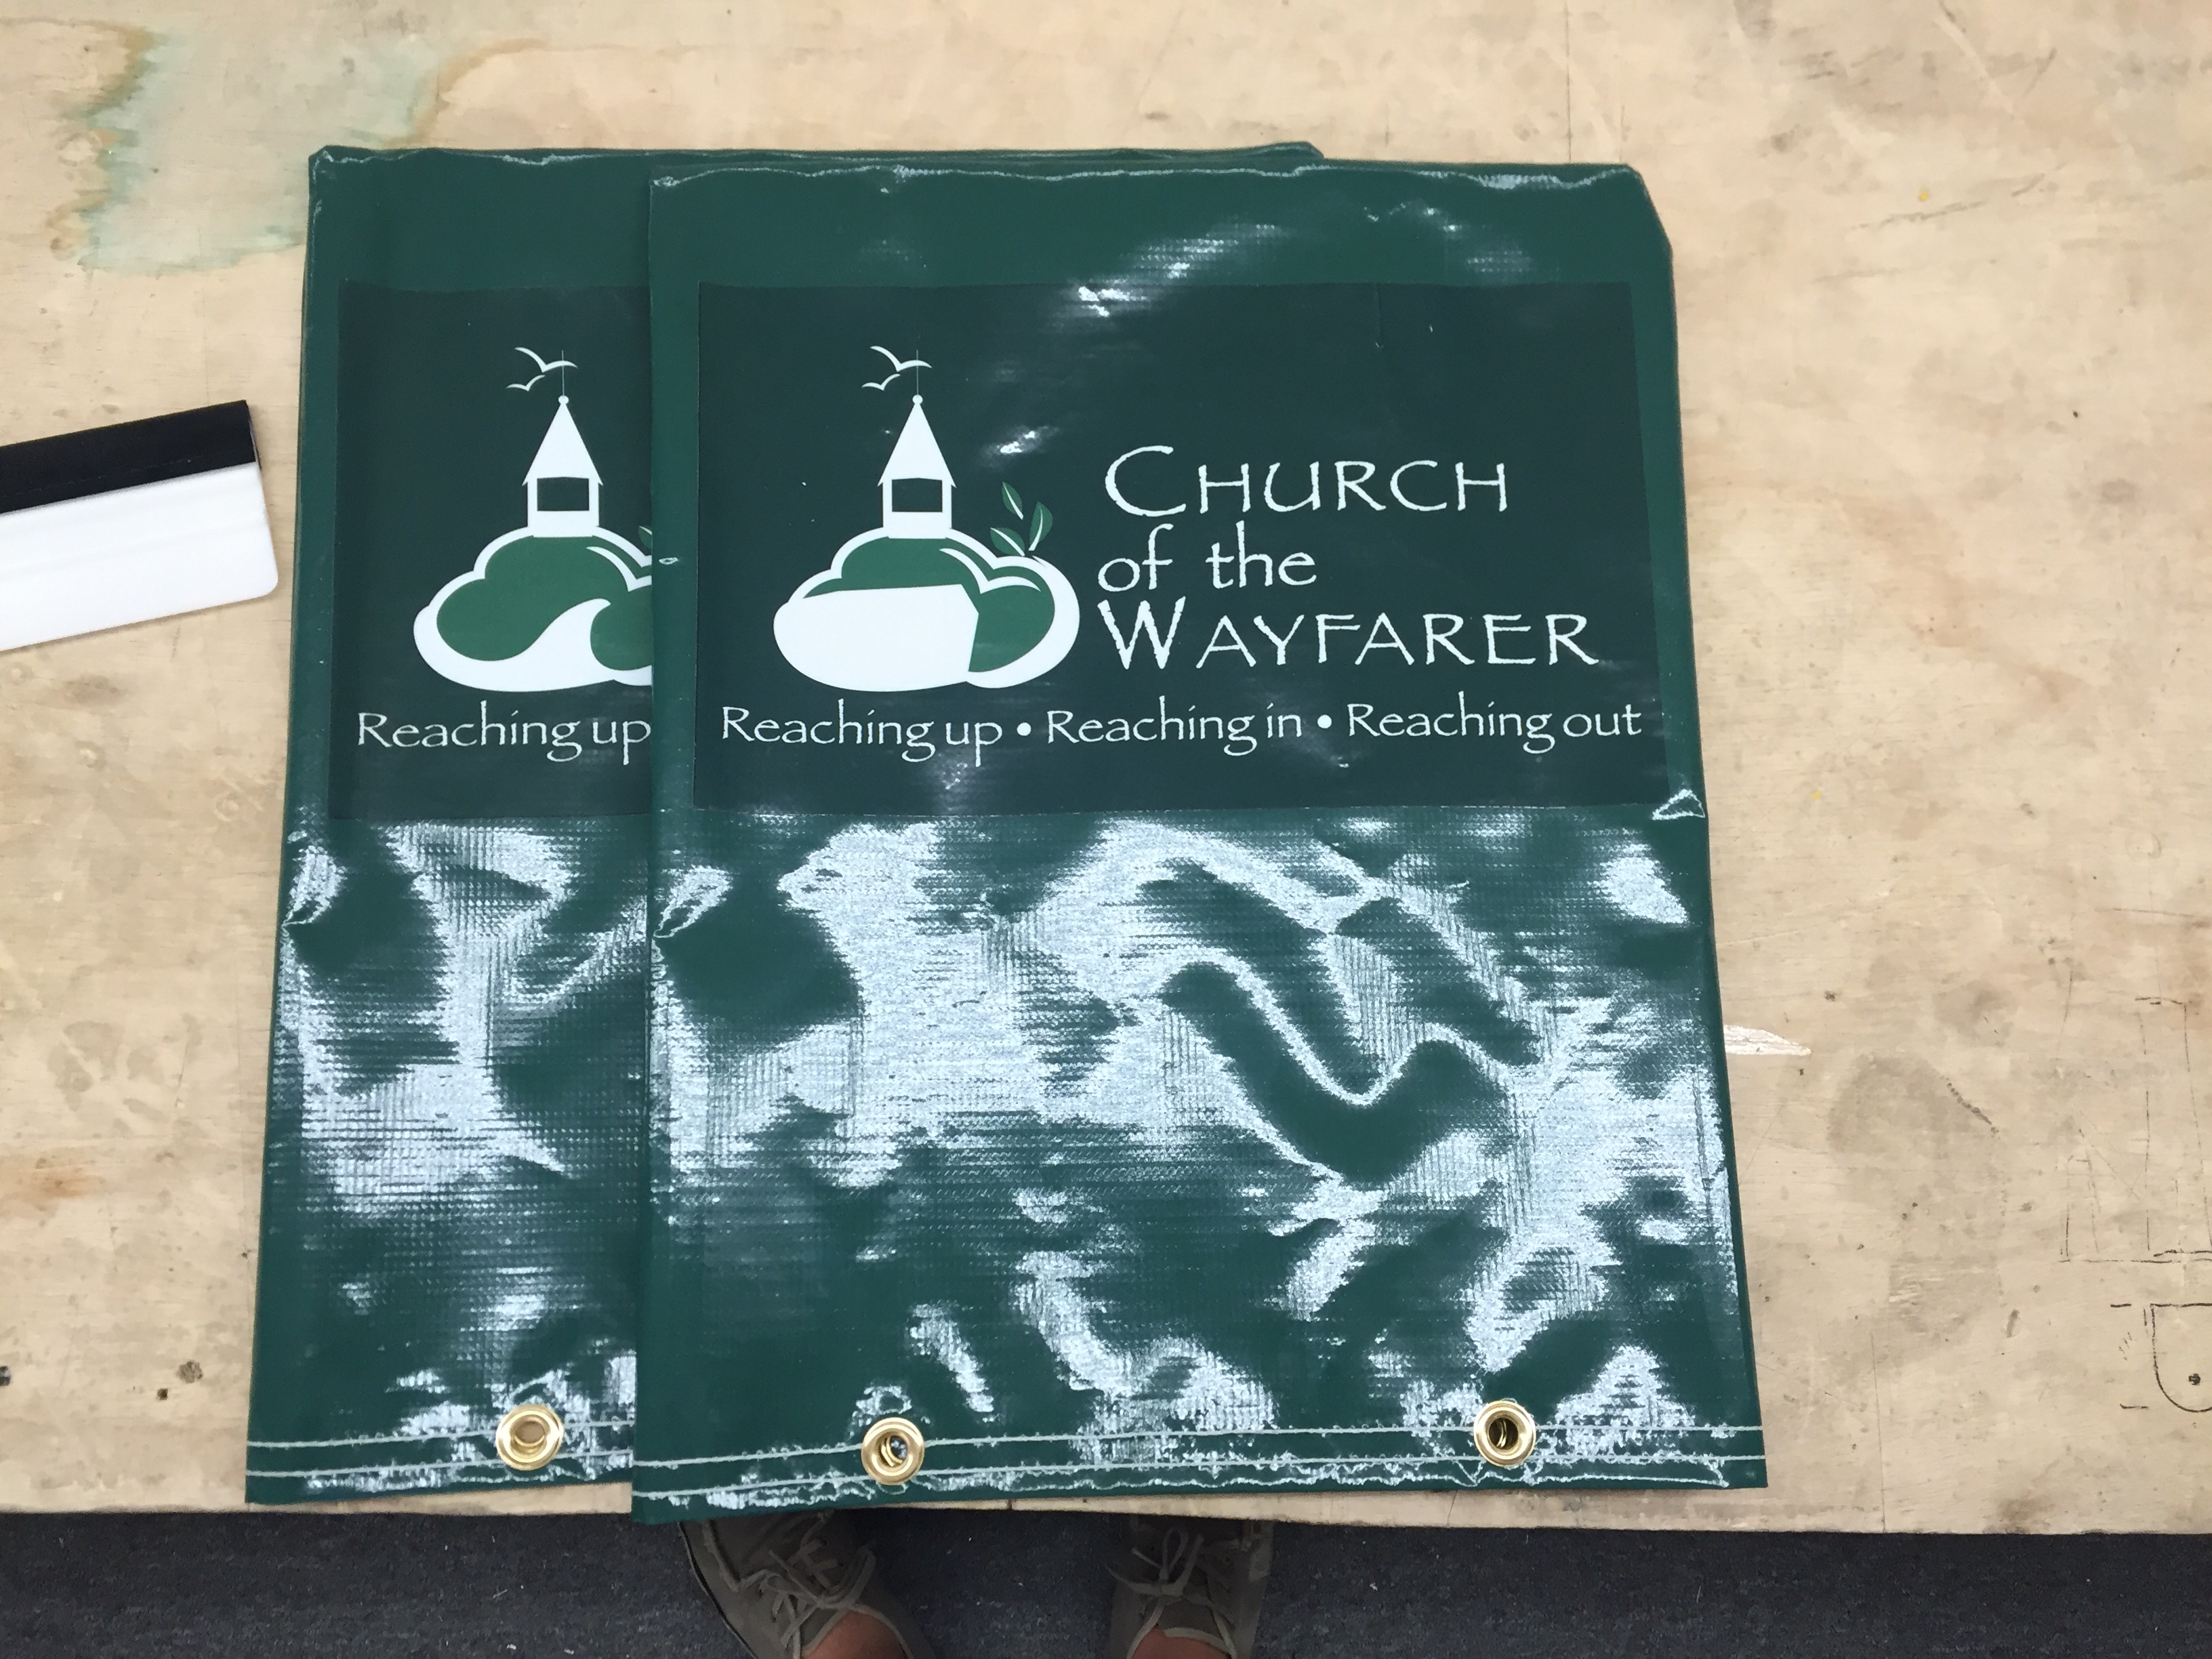 Church of the Wayfarer